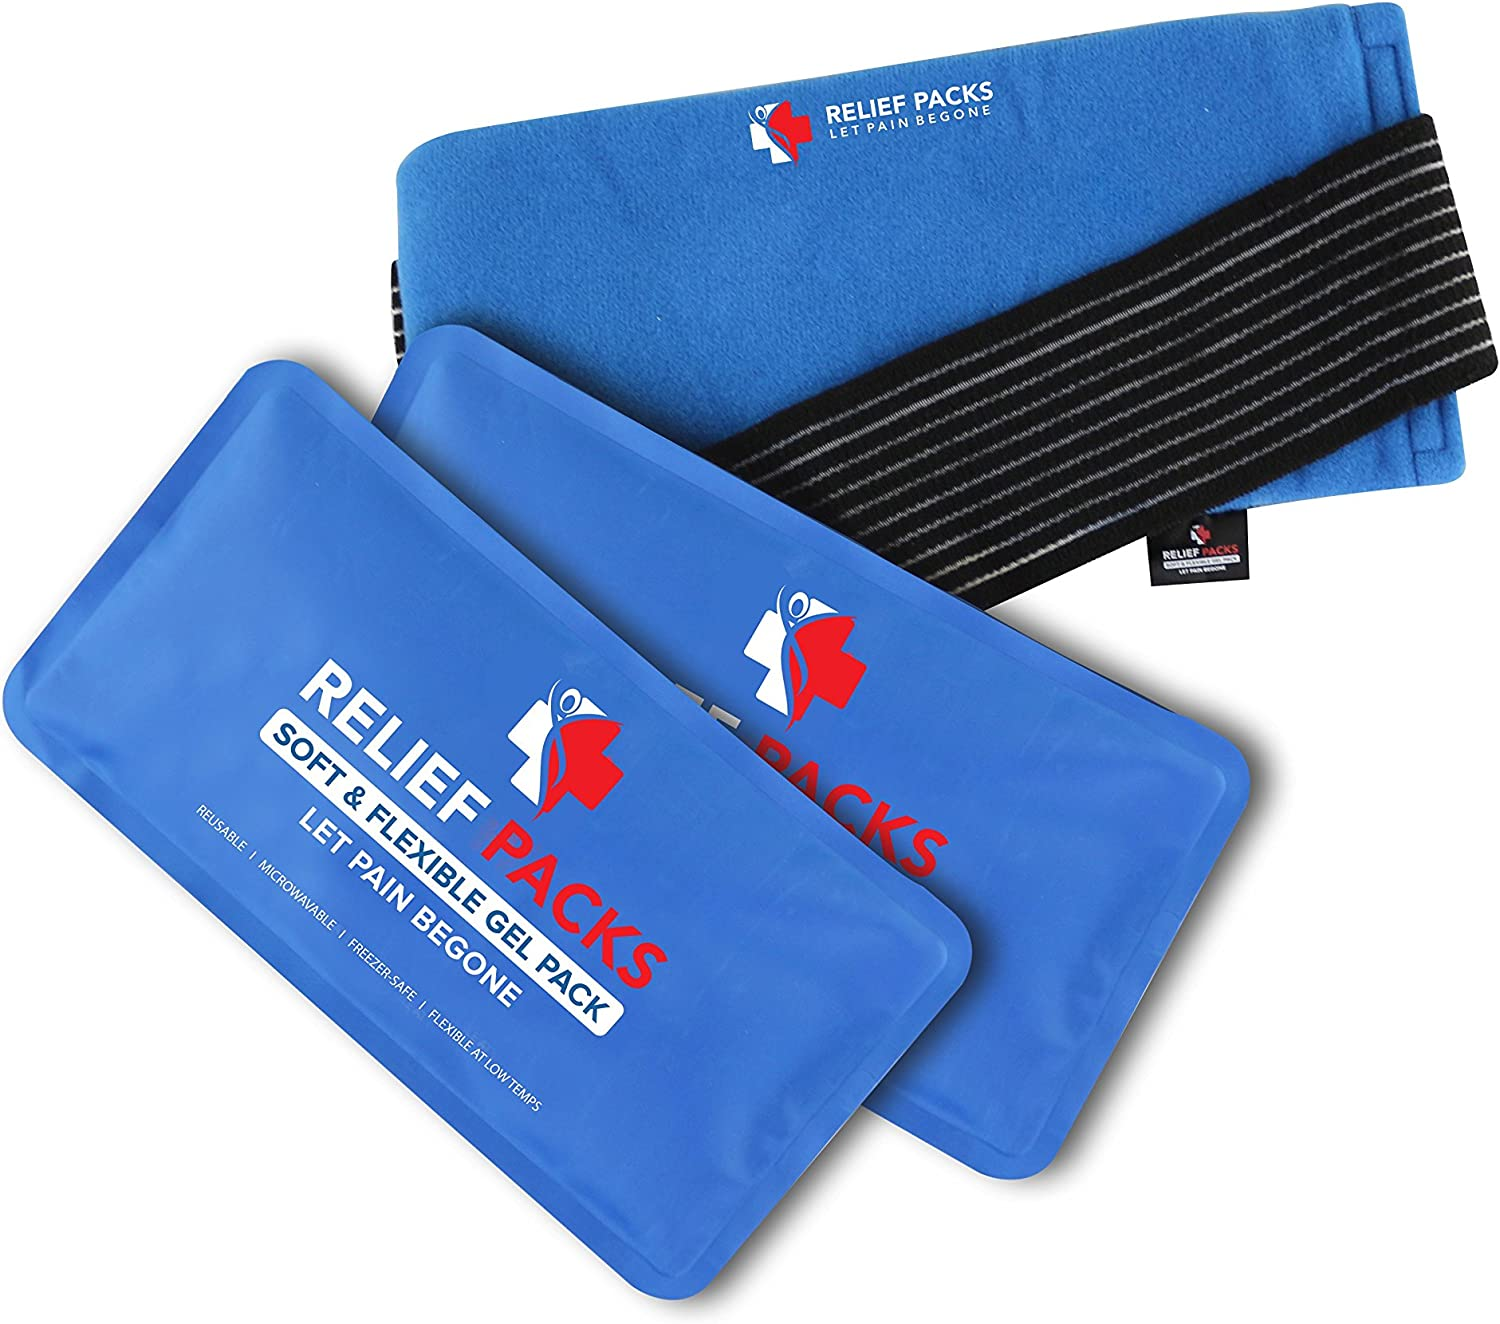 Soft & Flexible Gel Packs by Relief Packs: Reusable Ice Gel Pads for Cool & Hot Therapy – Multipurpose Microwaveable Gel Packs for Injuries, Pain Relief, Sports – Compression Strap Included (2